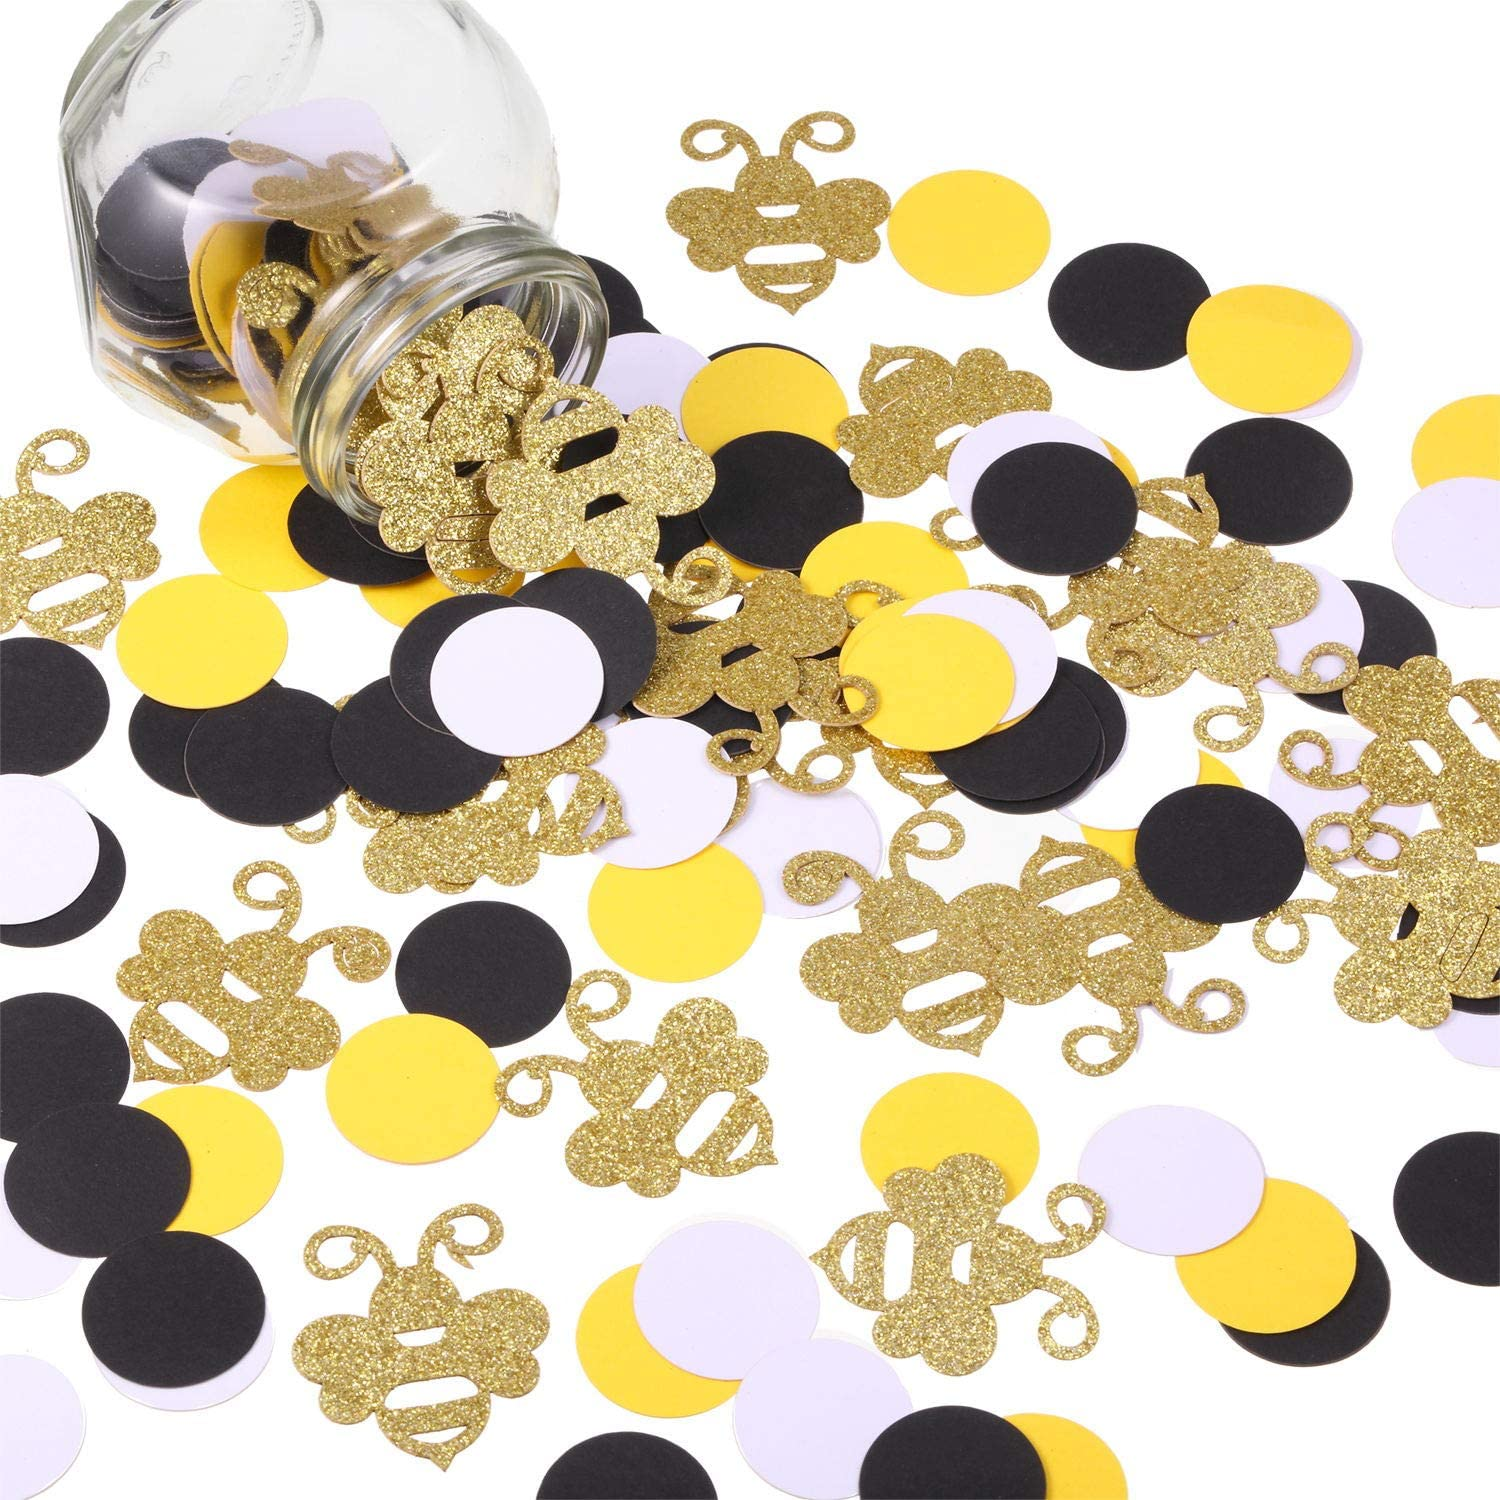 360 Pieces Bee Confetti Gold Glitter Bee Confetti Yellow Black Circle Confetti for Bee Themed Party Baby Shower Birthday Table Party Decoration